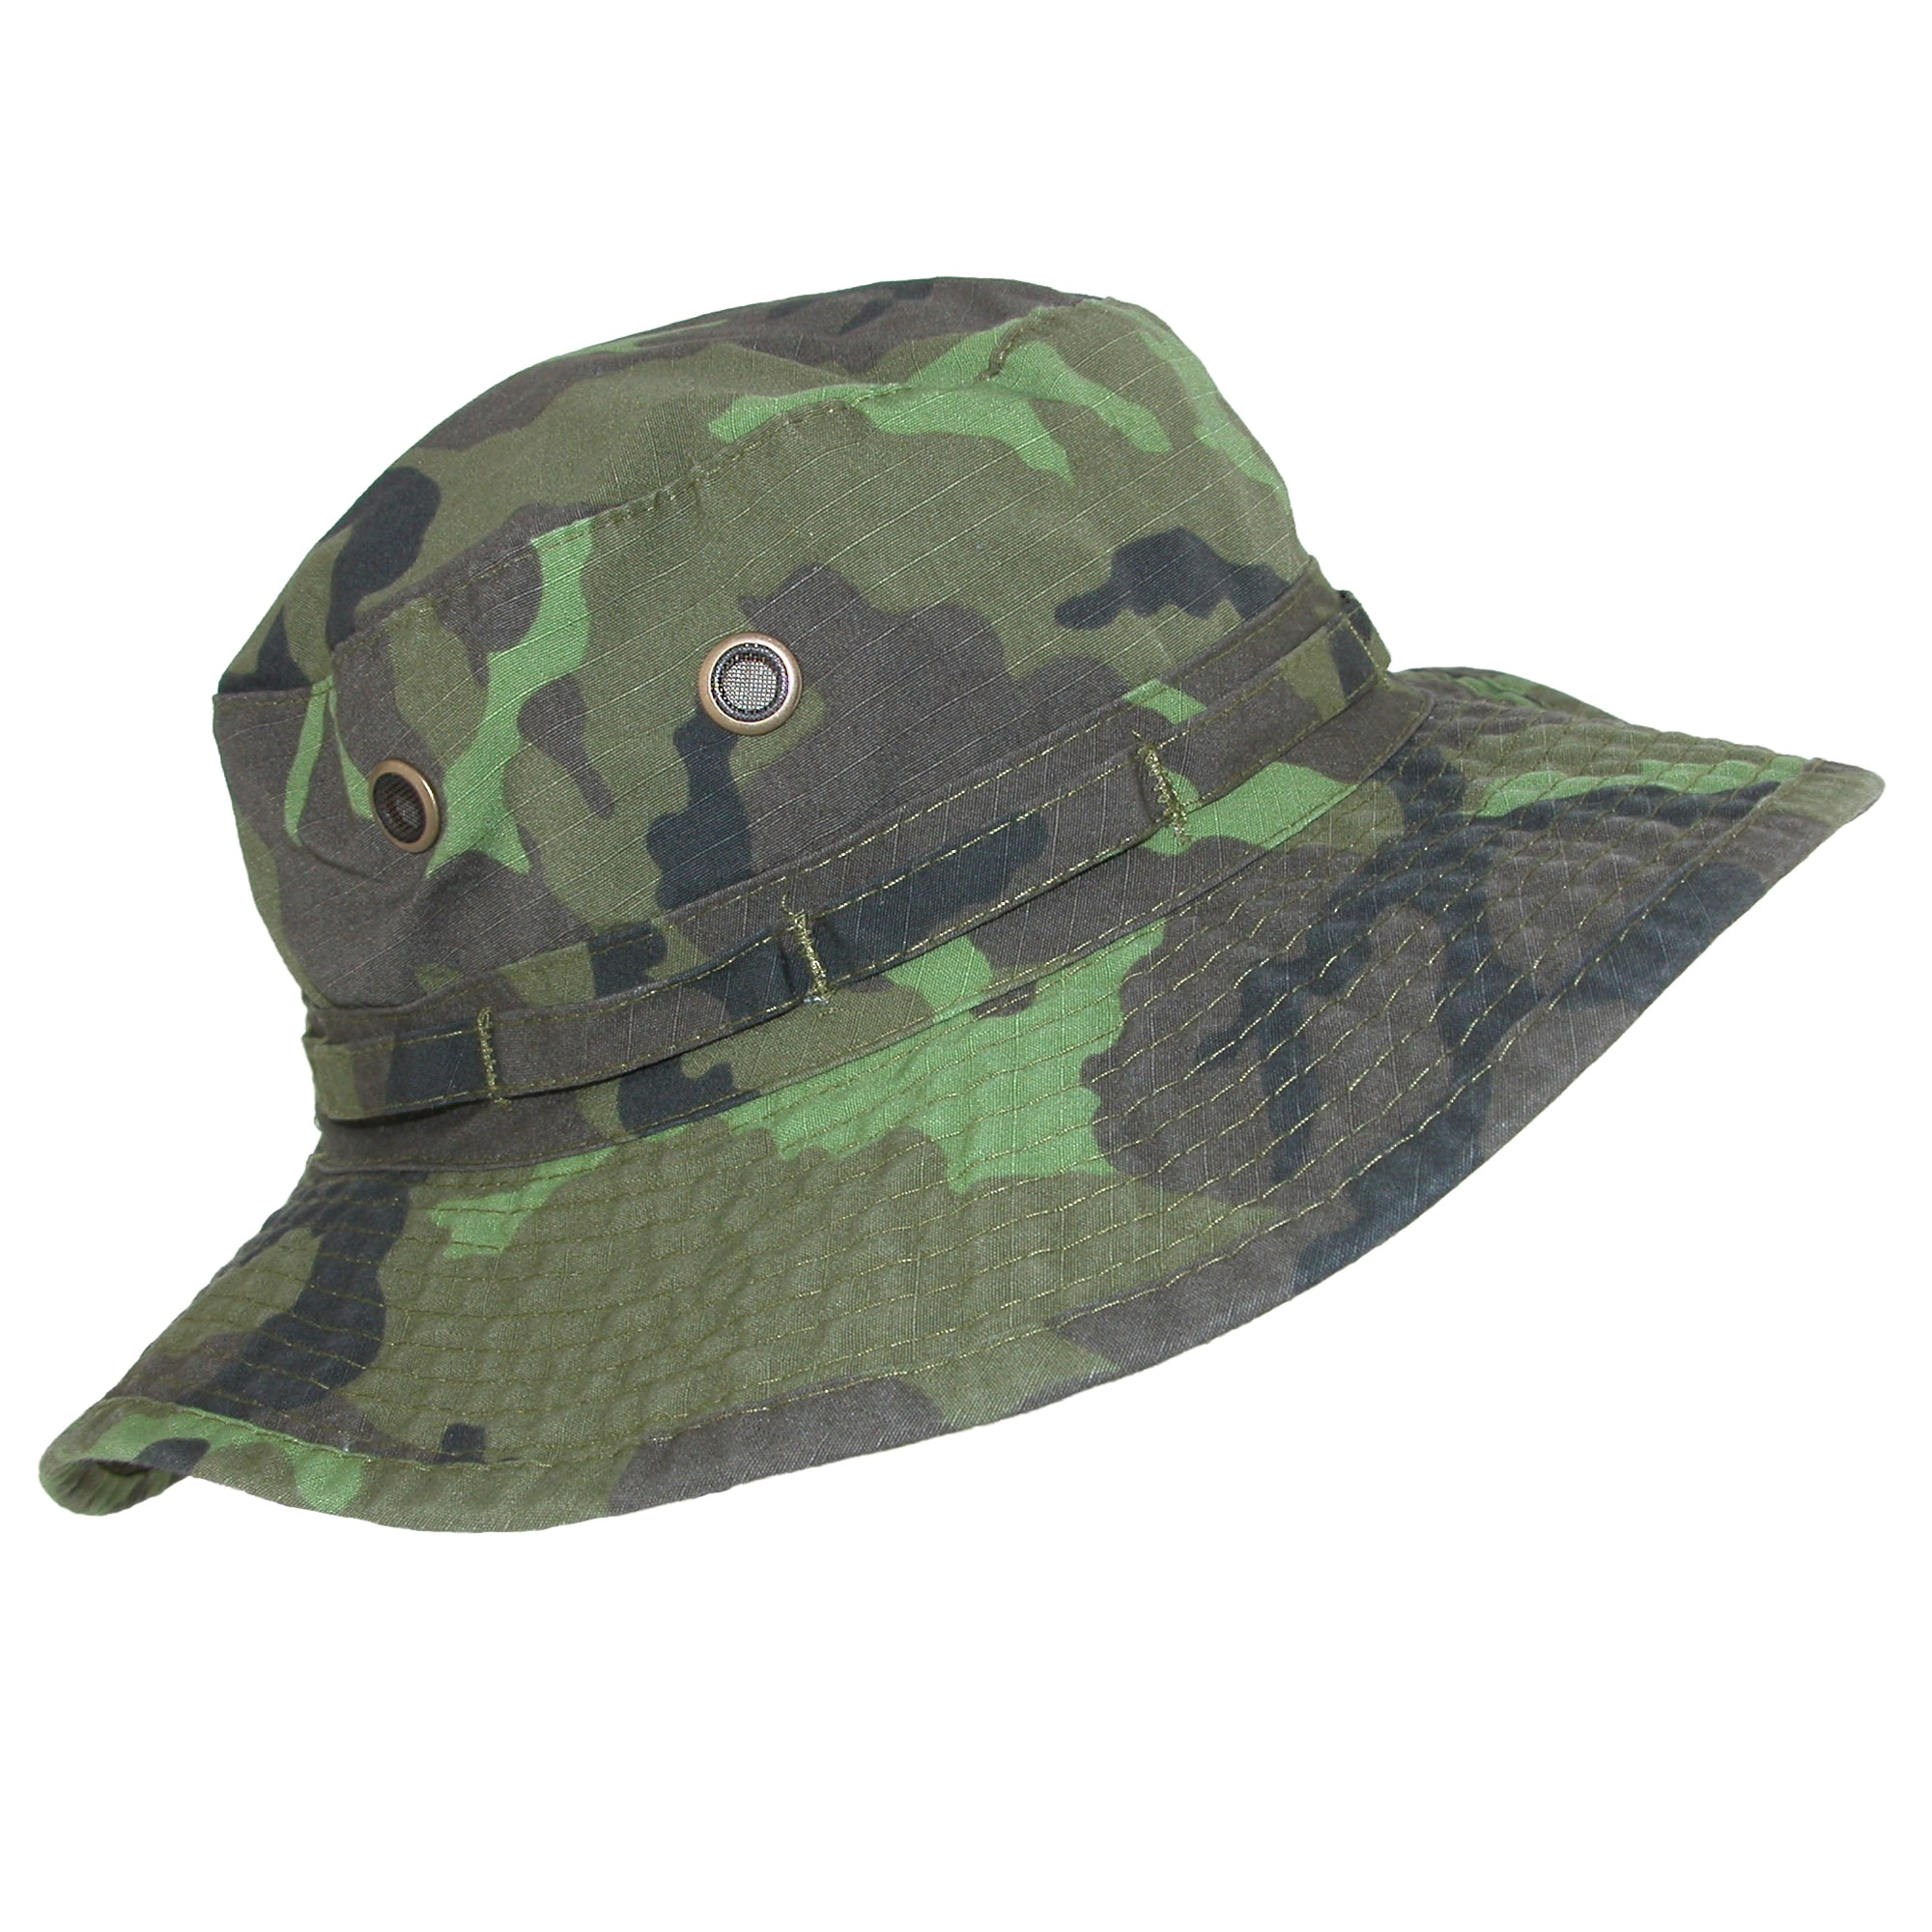 8efb94ac4 DPC Outdoor Design Men's Cotton Camouflage Boonie Hat with Chin Cord